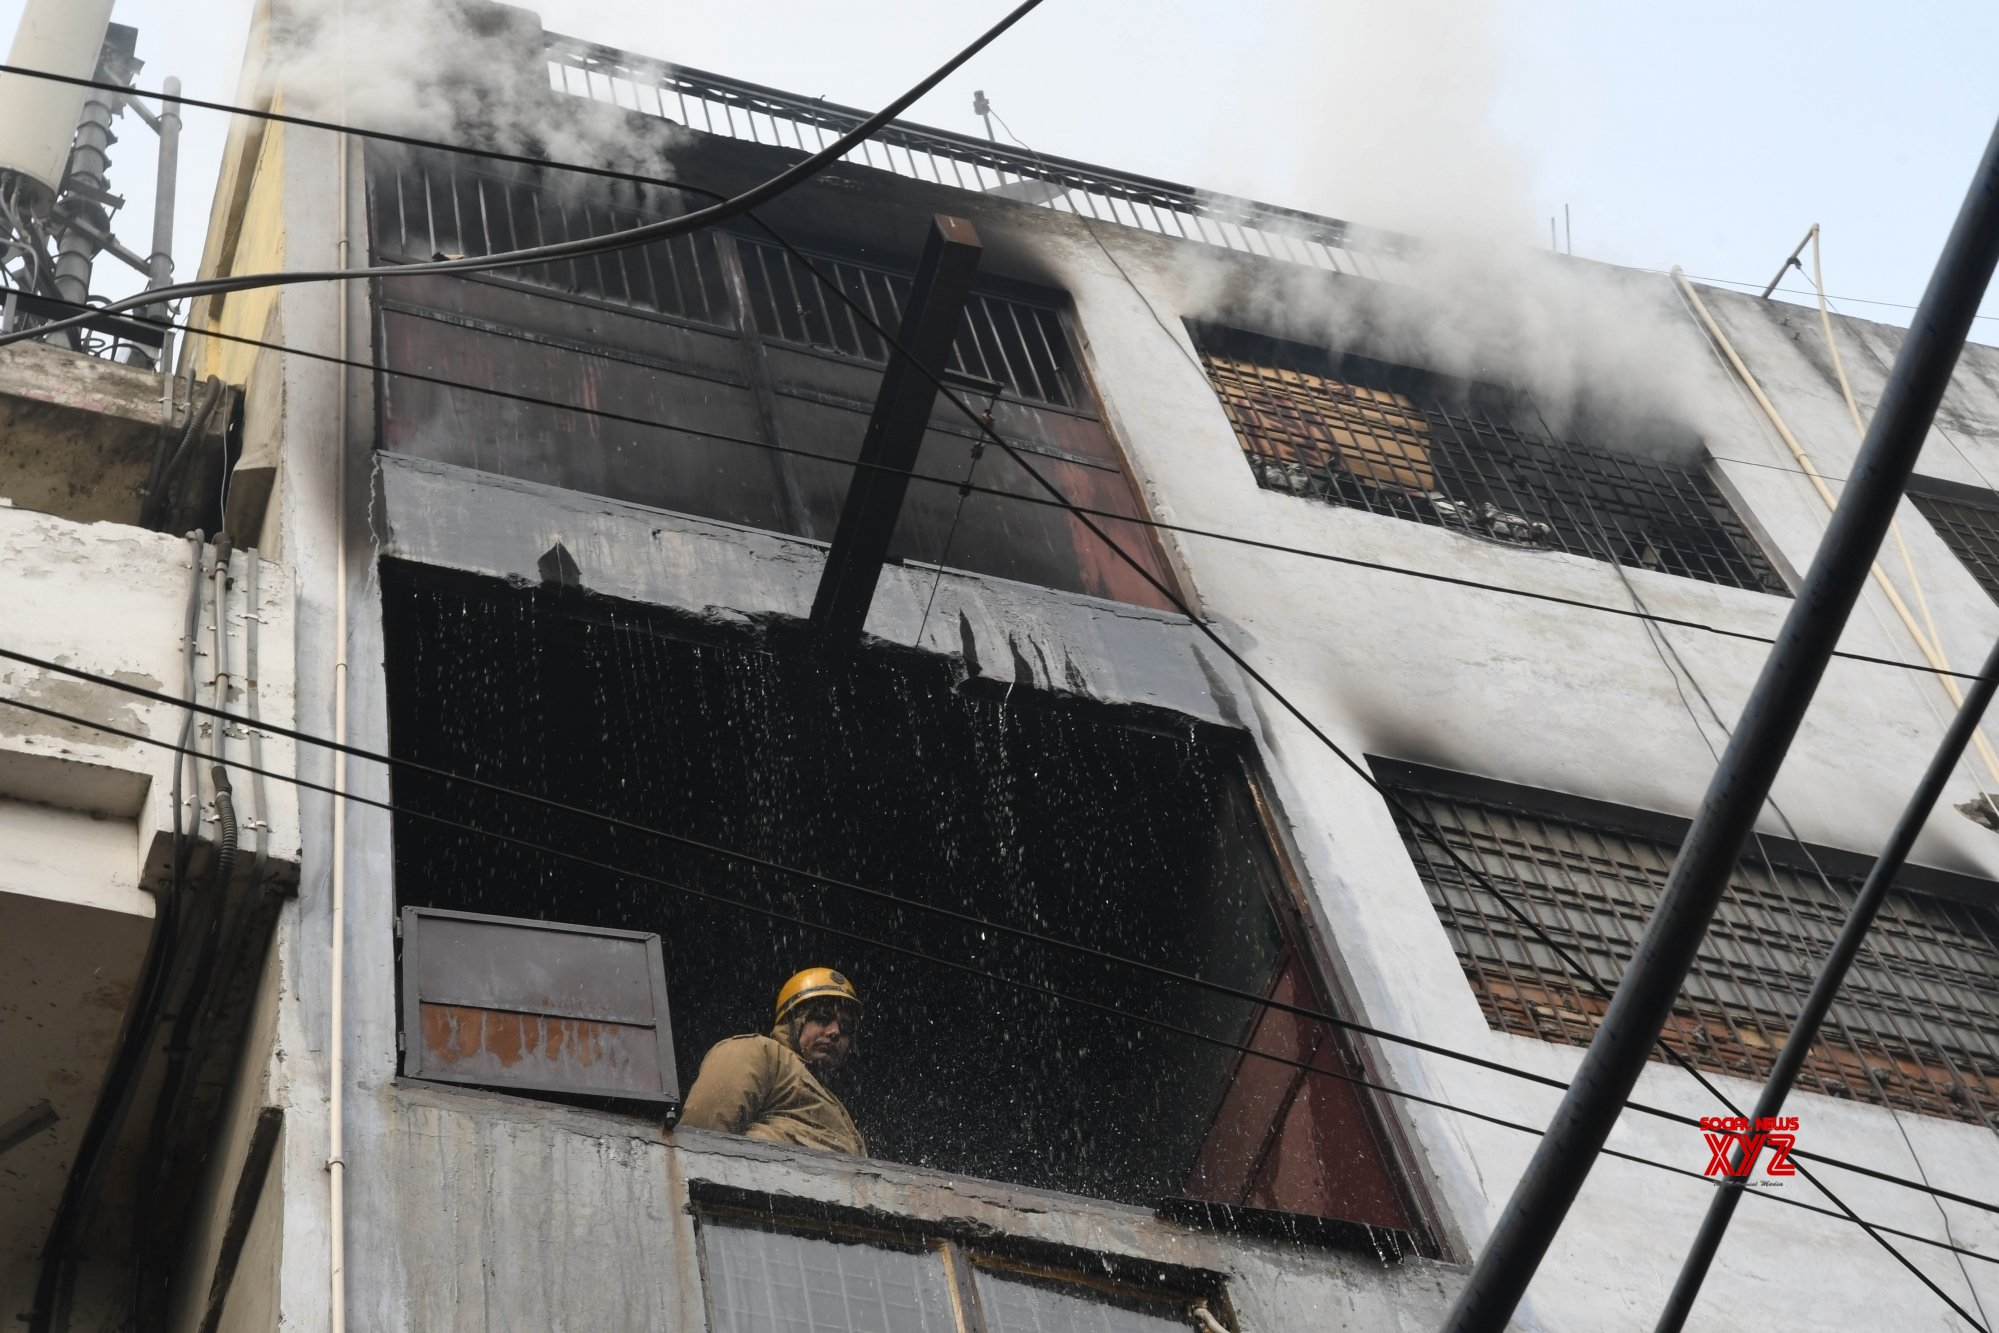 New Delhi: Fire breaks out at Lawrence Road footwear manufacturing unit #Gallery